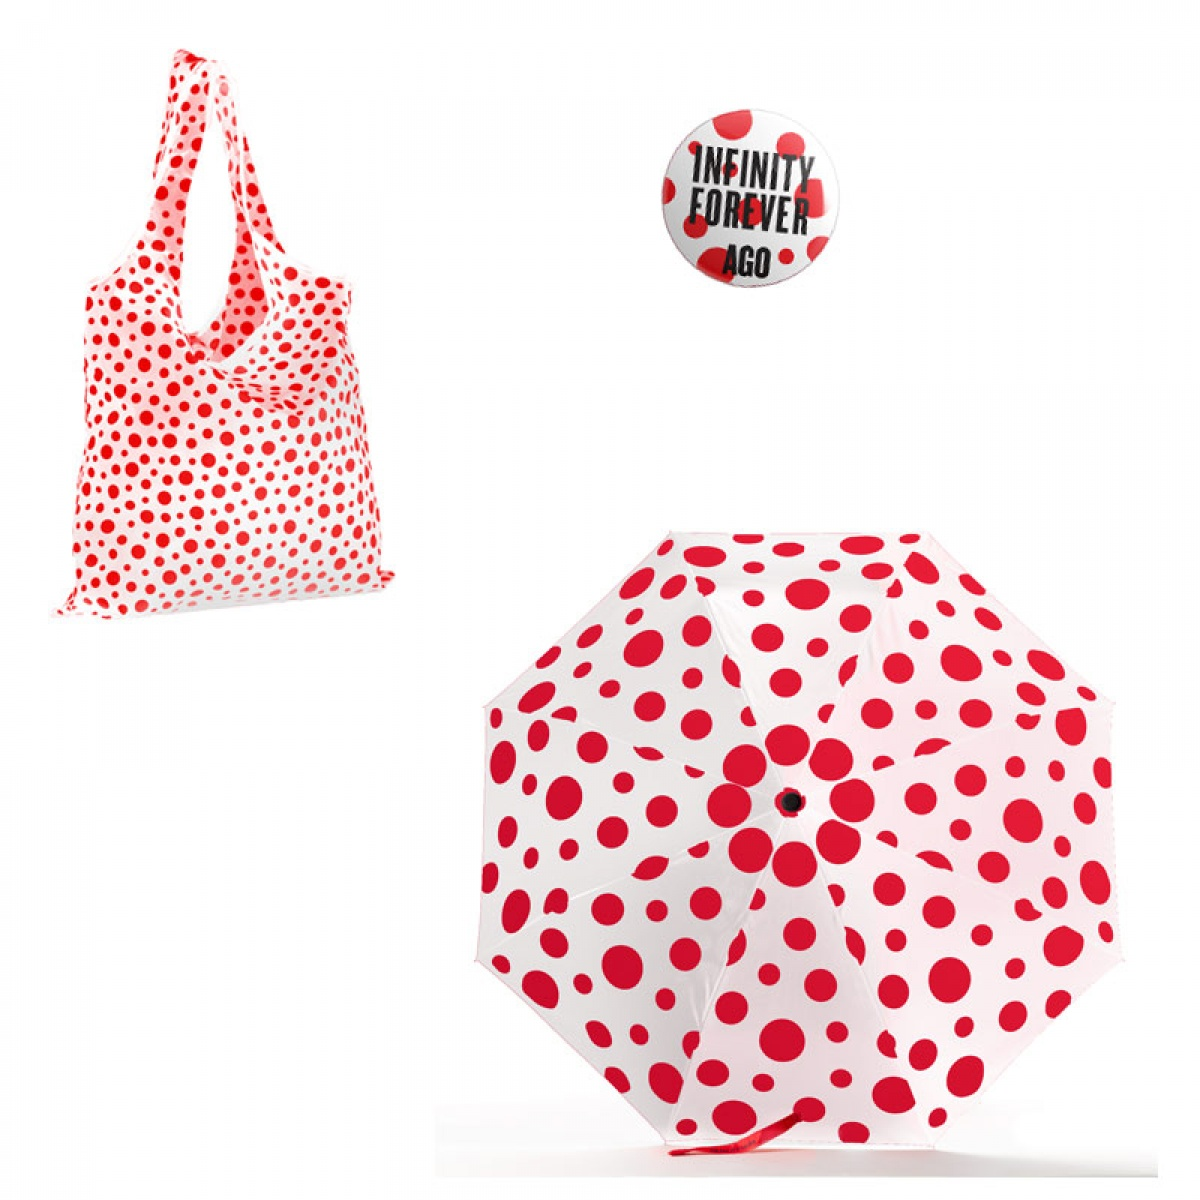 Examples of merchandise - tote, umbrella, button